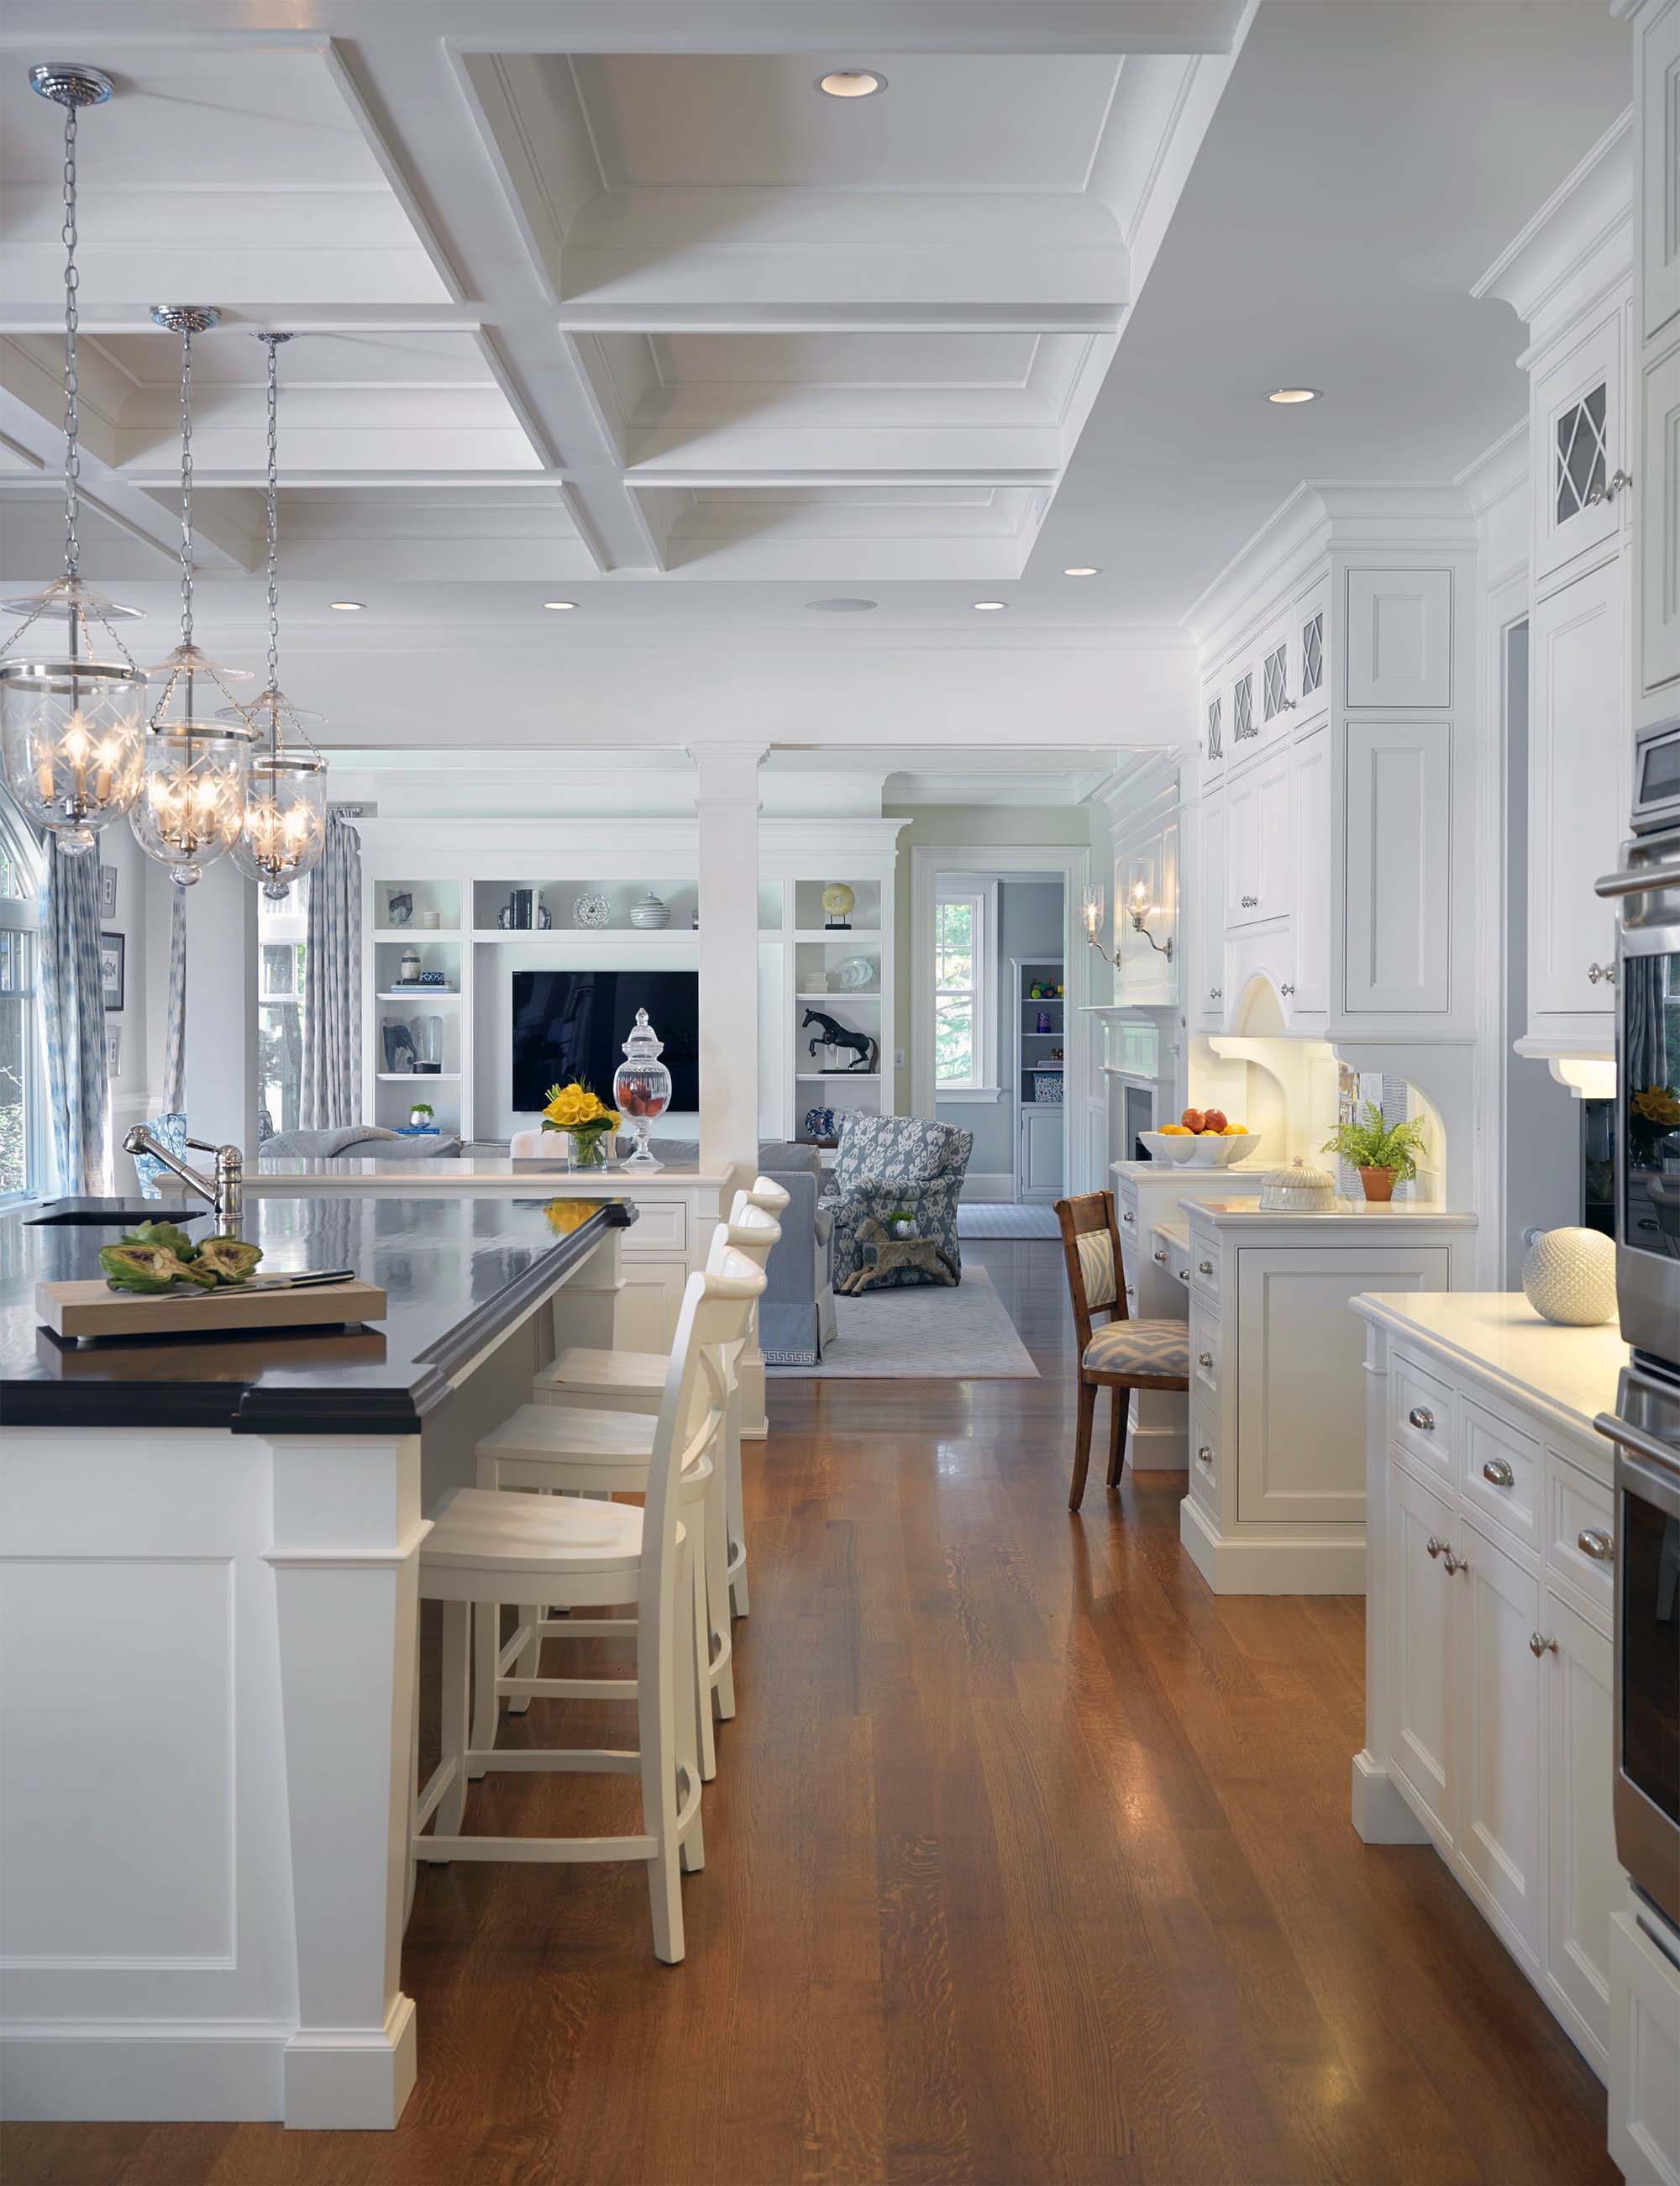 Kitchen Lighting Ideas For High Ceilings